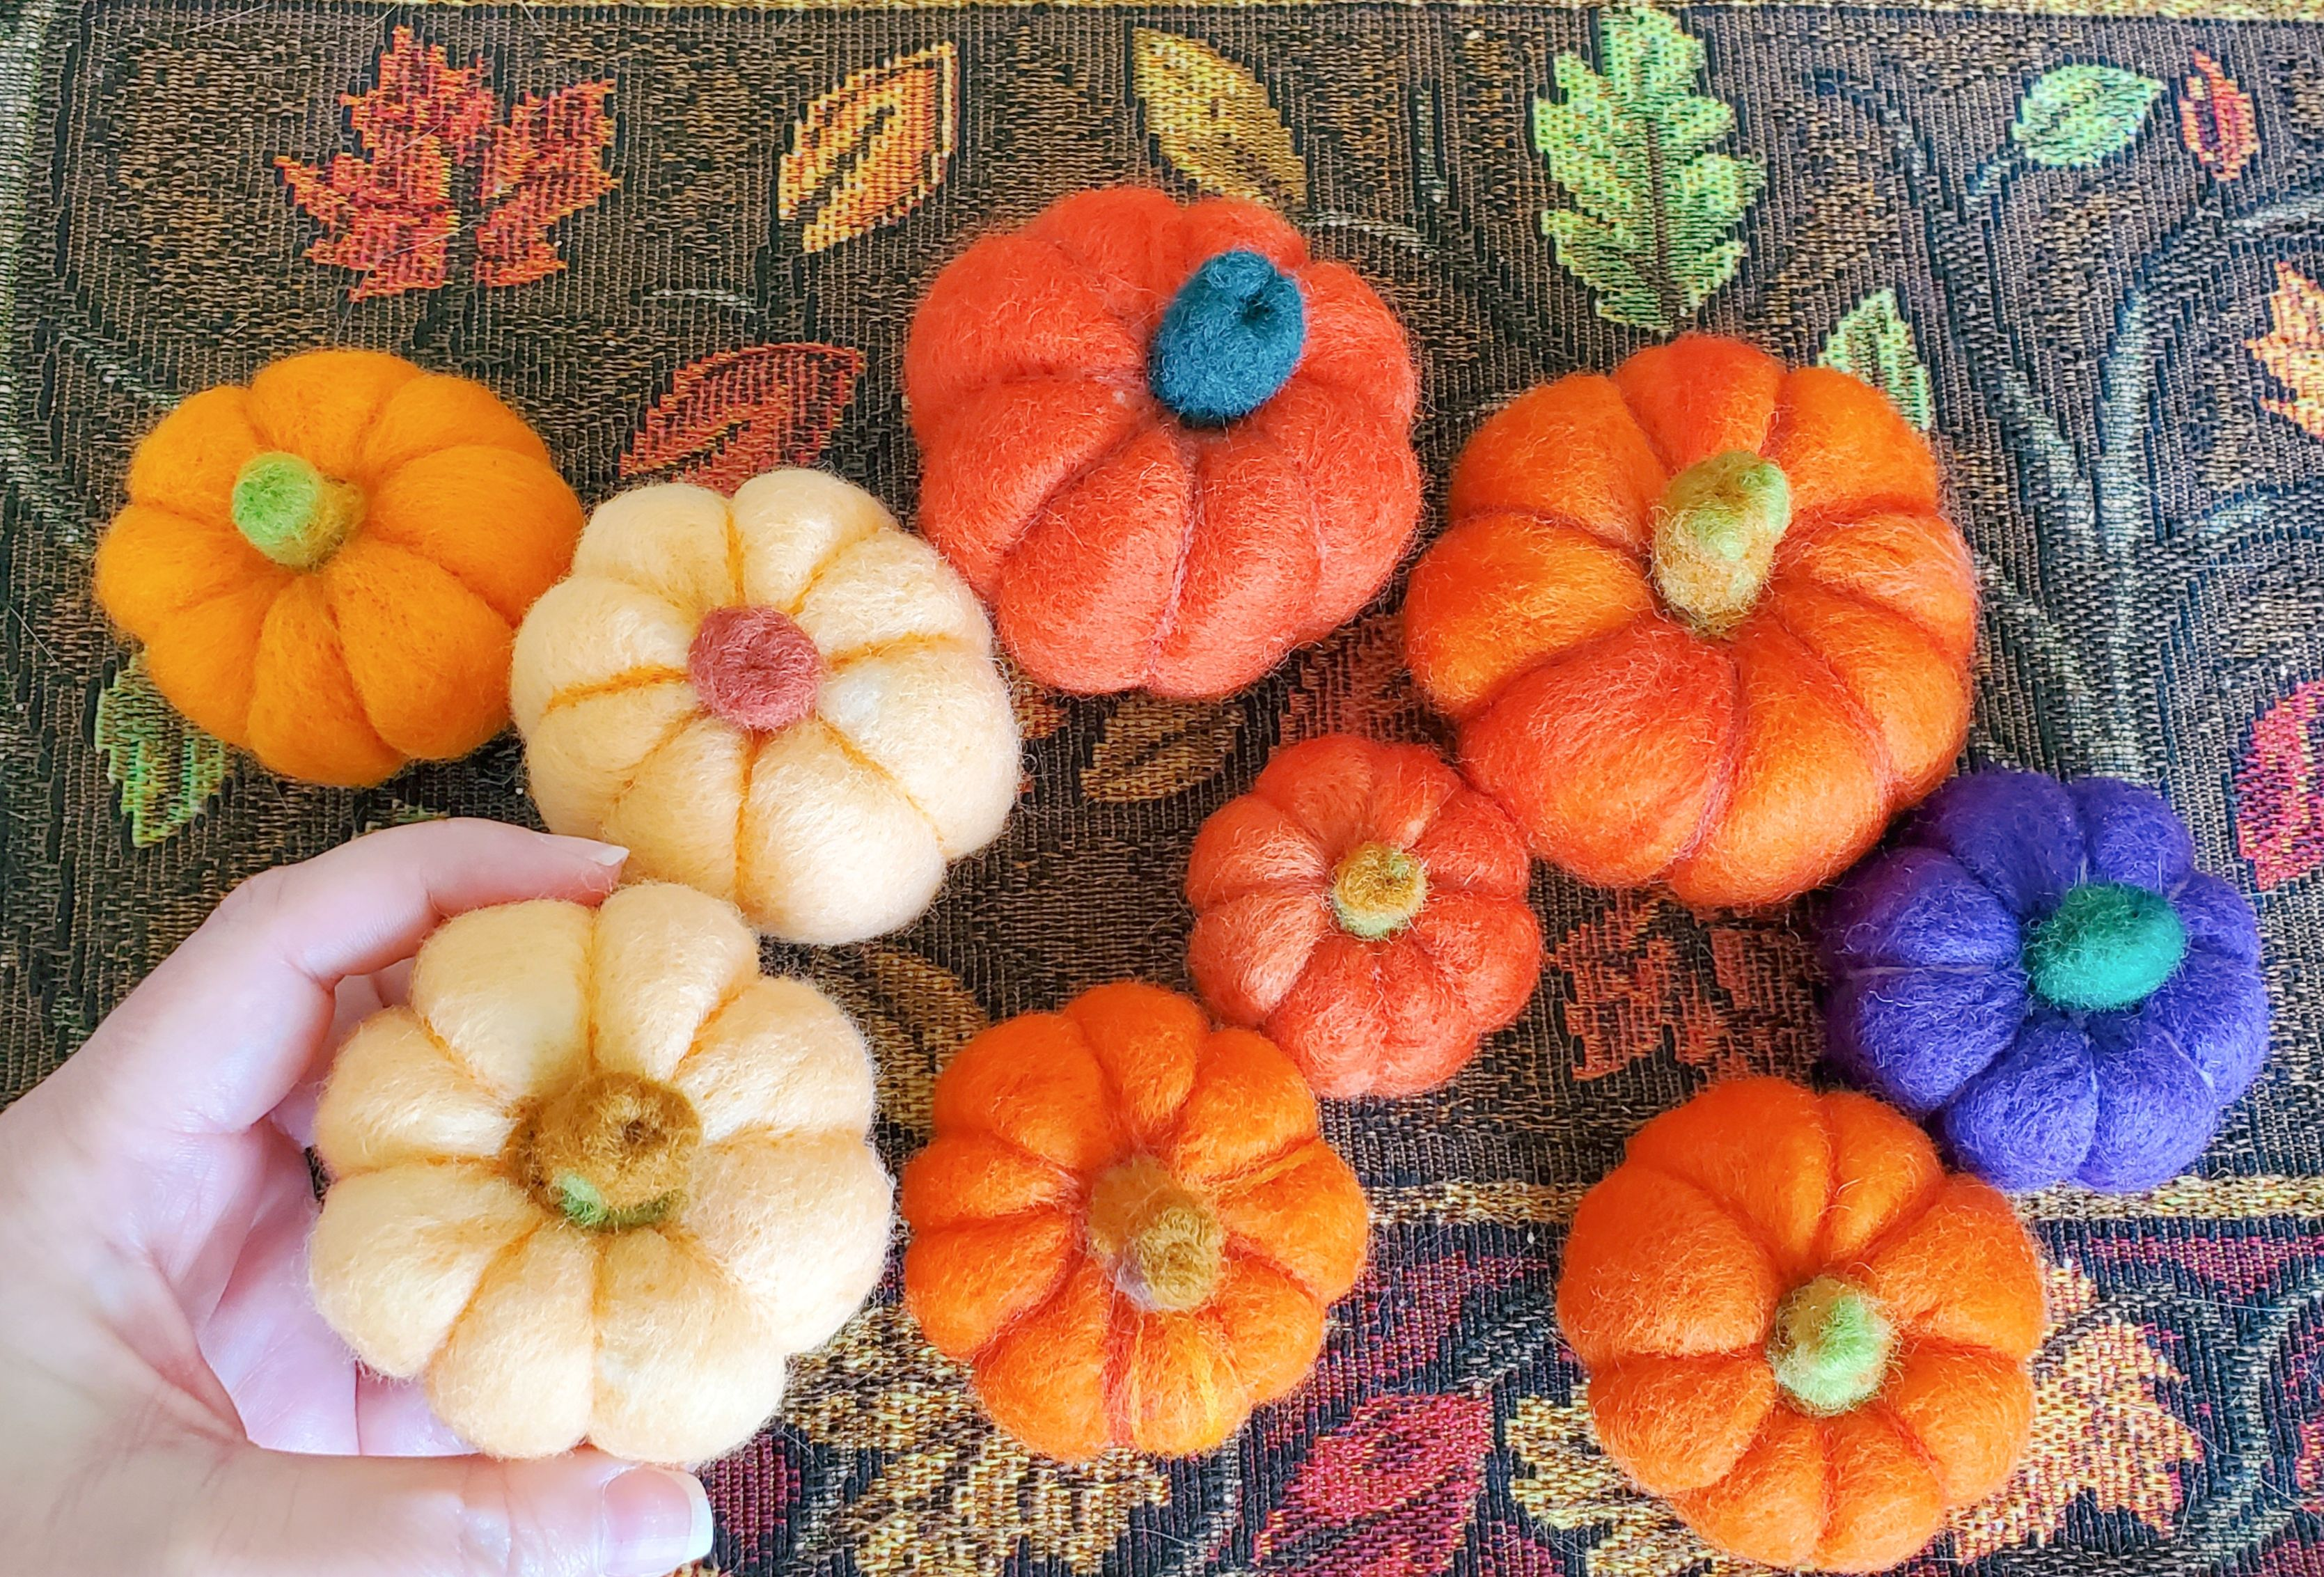 several small pumpkins with a hand holding one